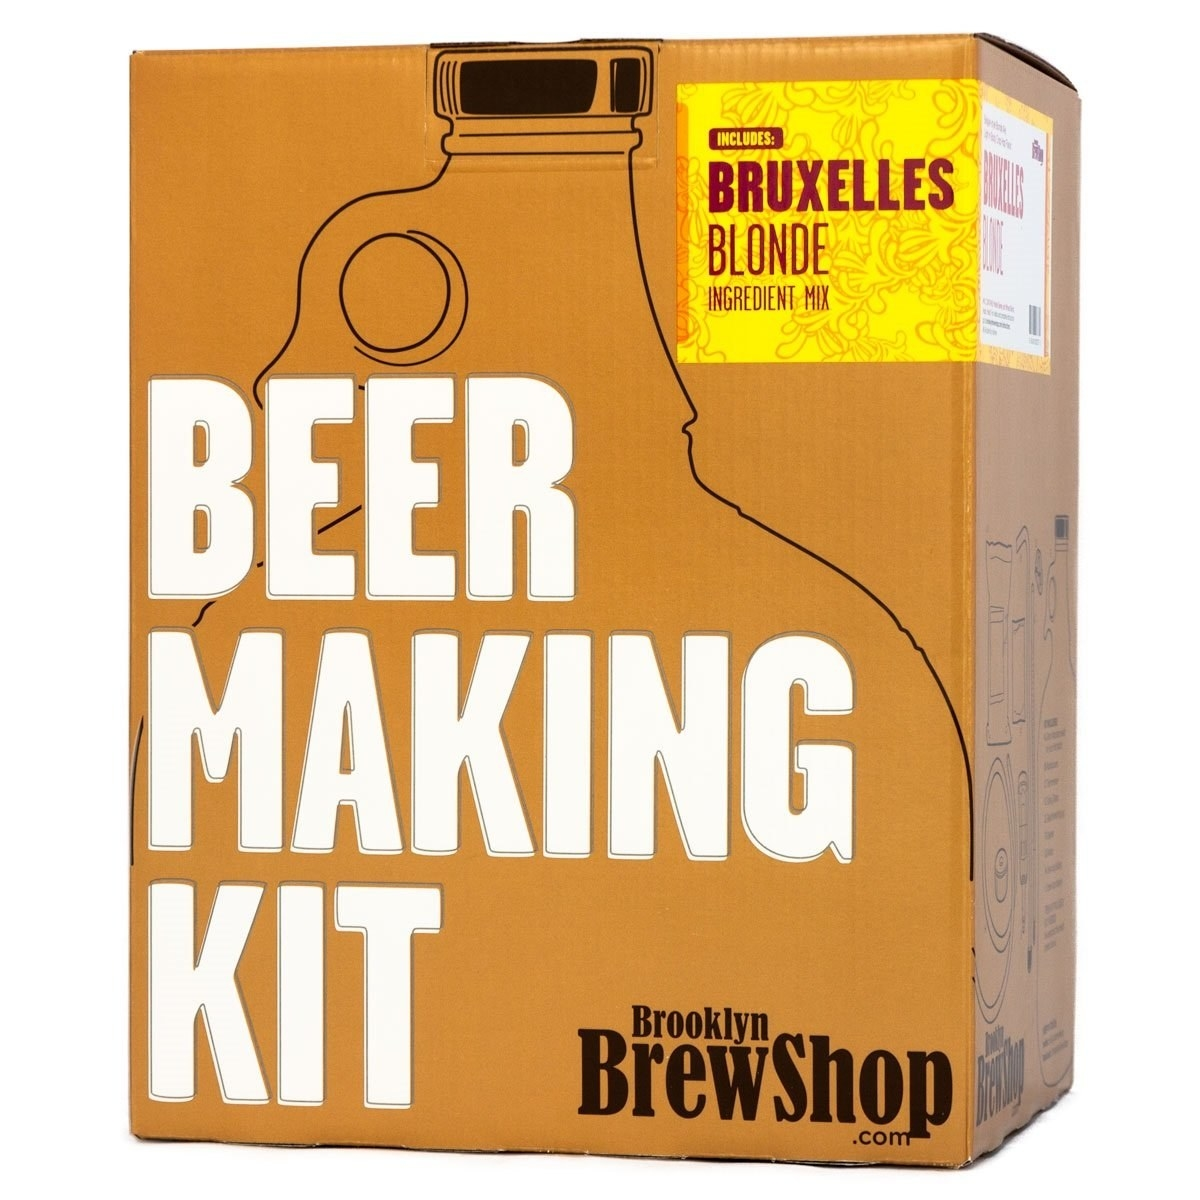 A Brooklyn BrewShop beer making kit